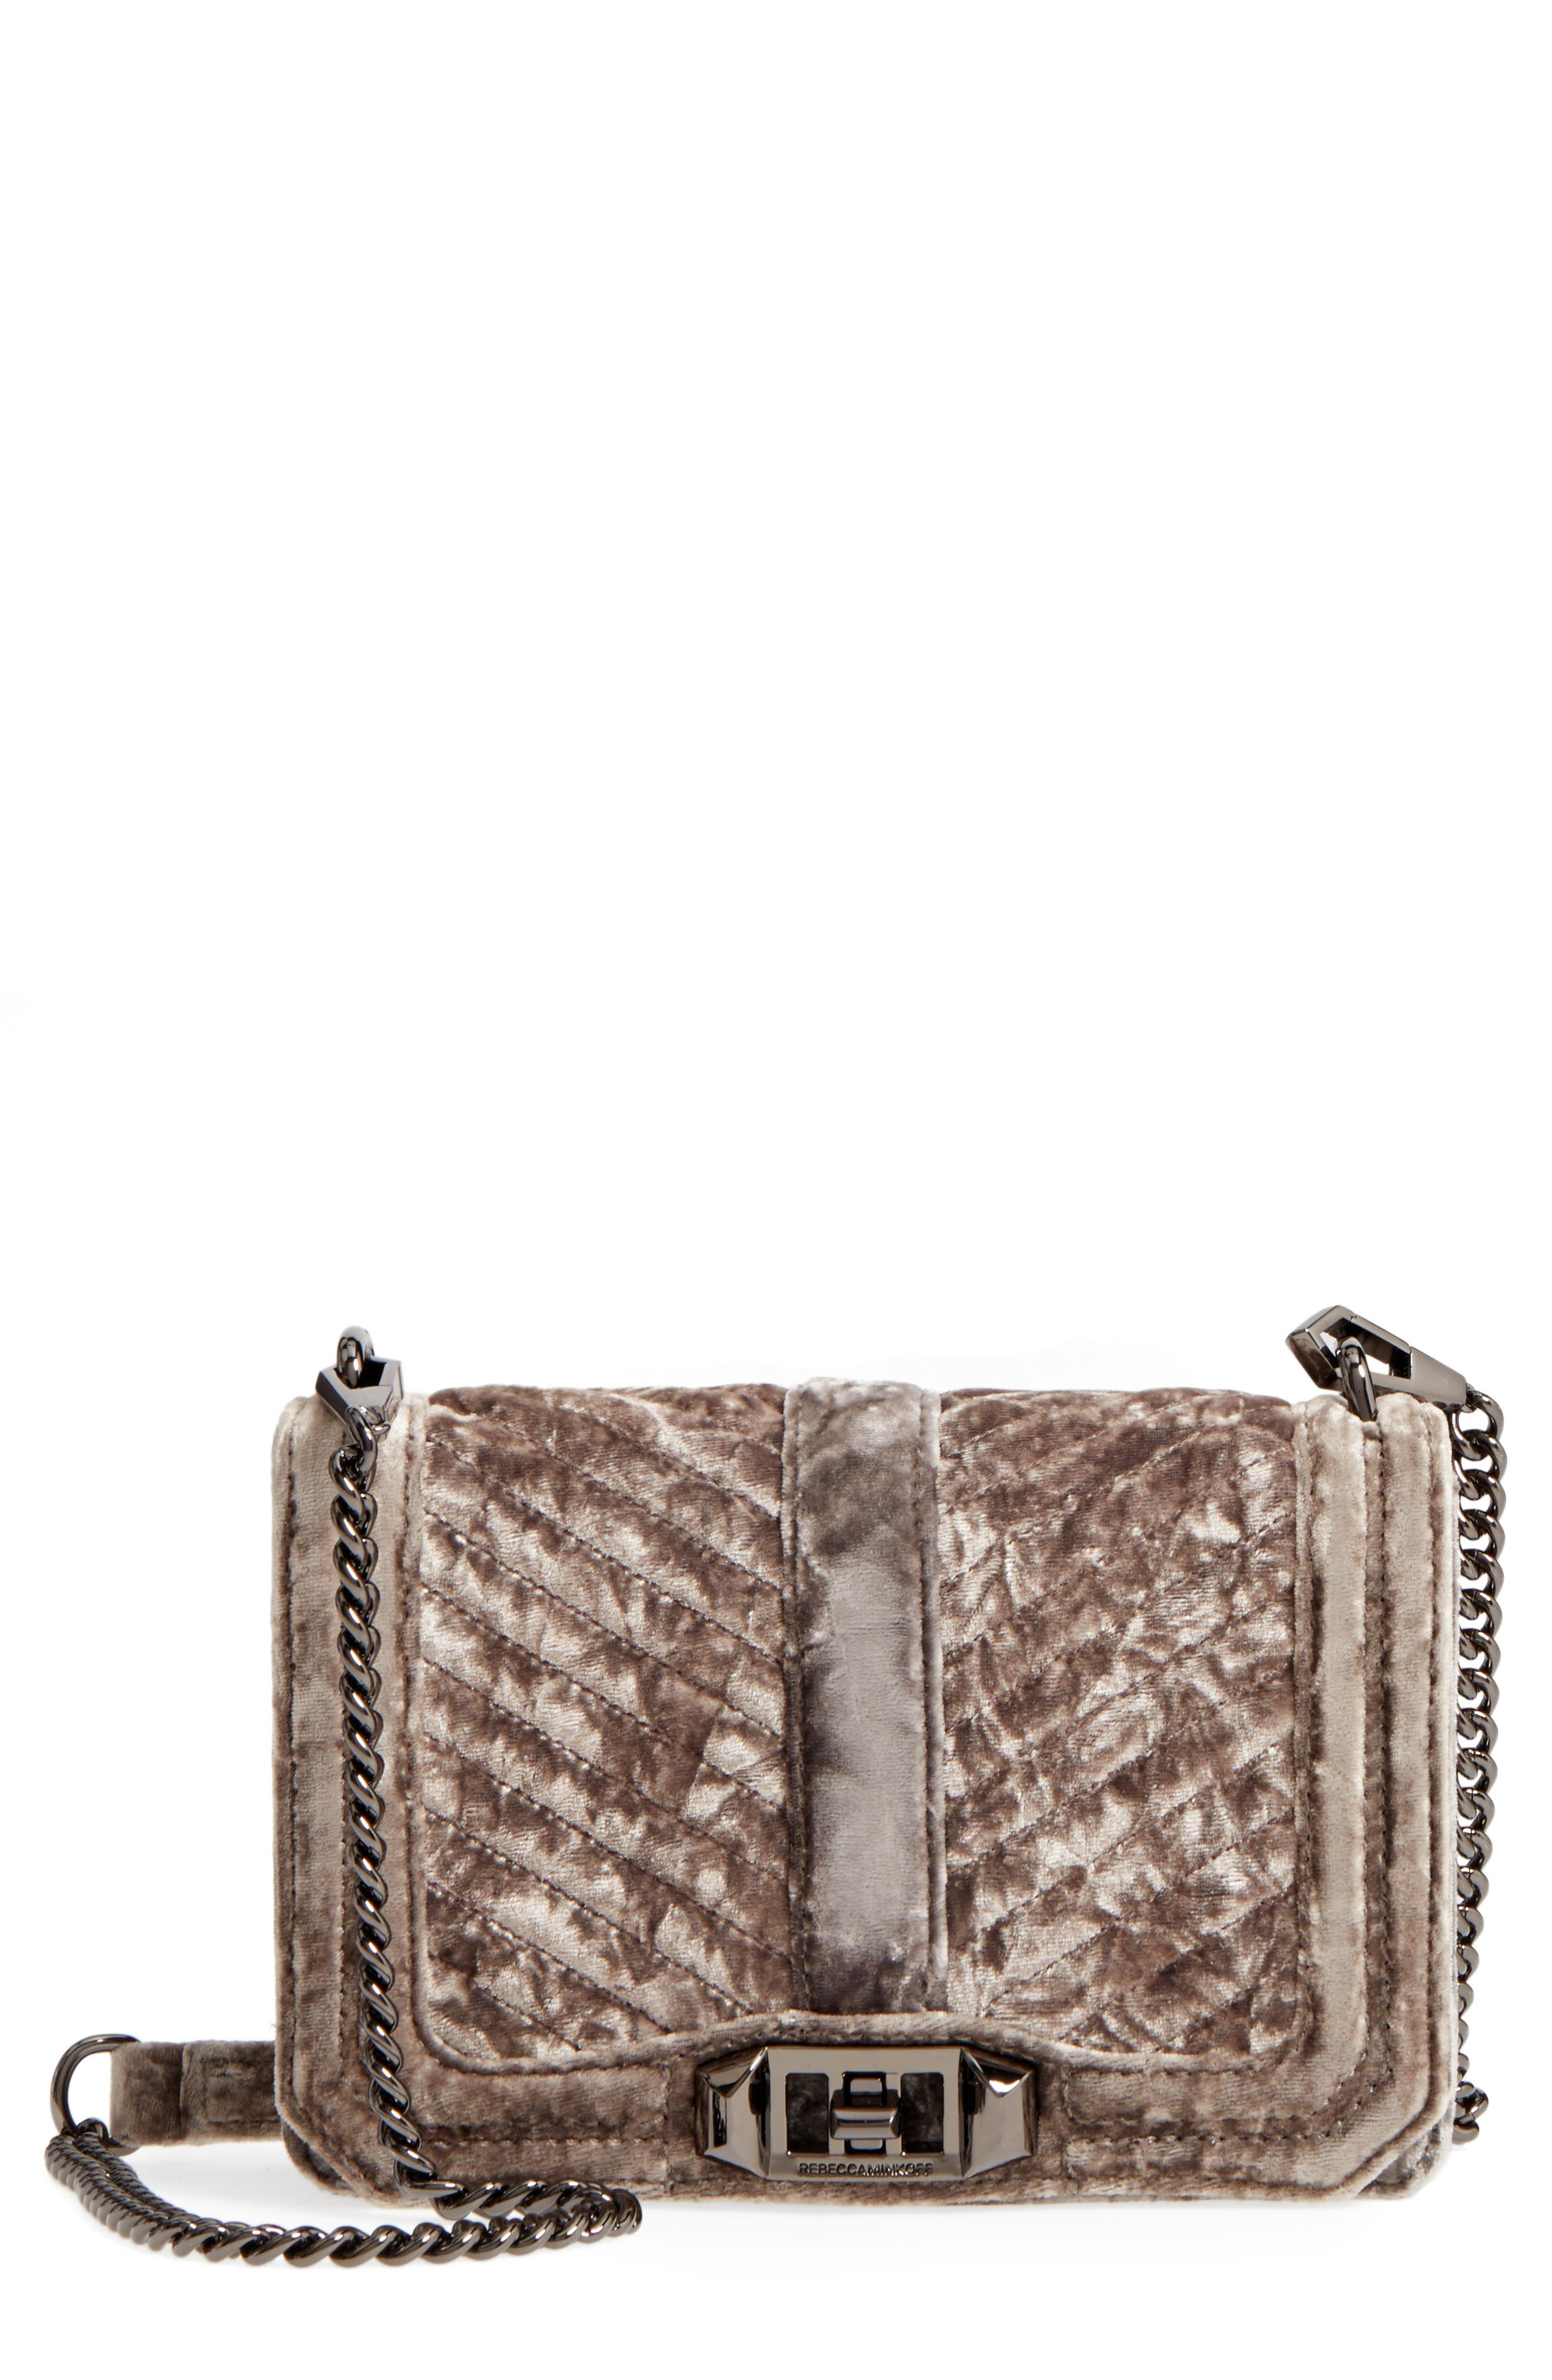 'Velvet Love' Crossbody Bag,                             Main thumbnail 1, color,                             Grey